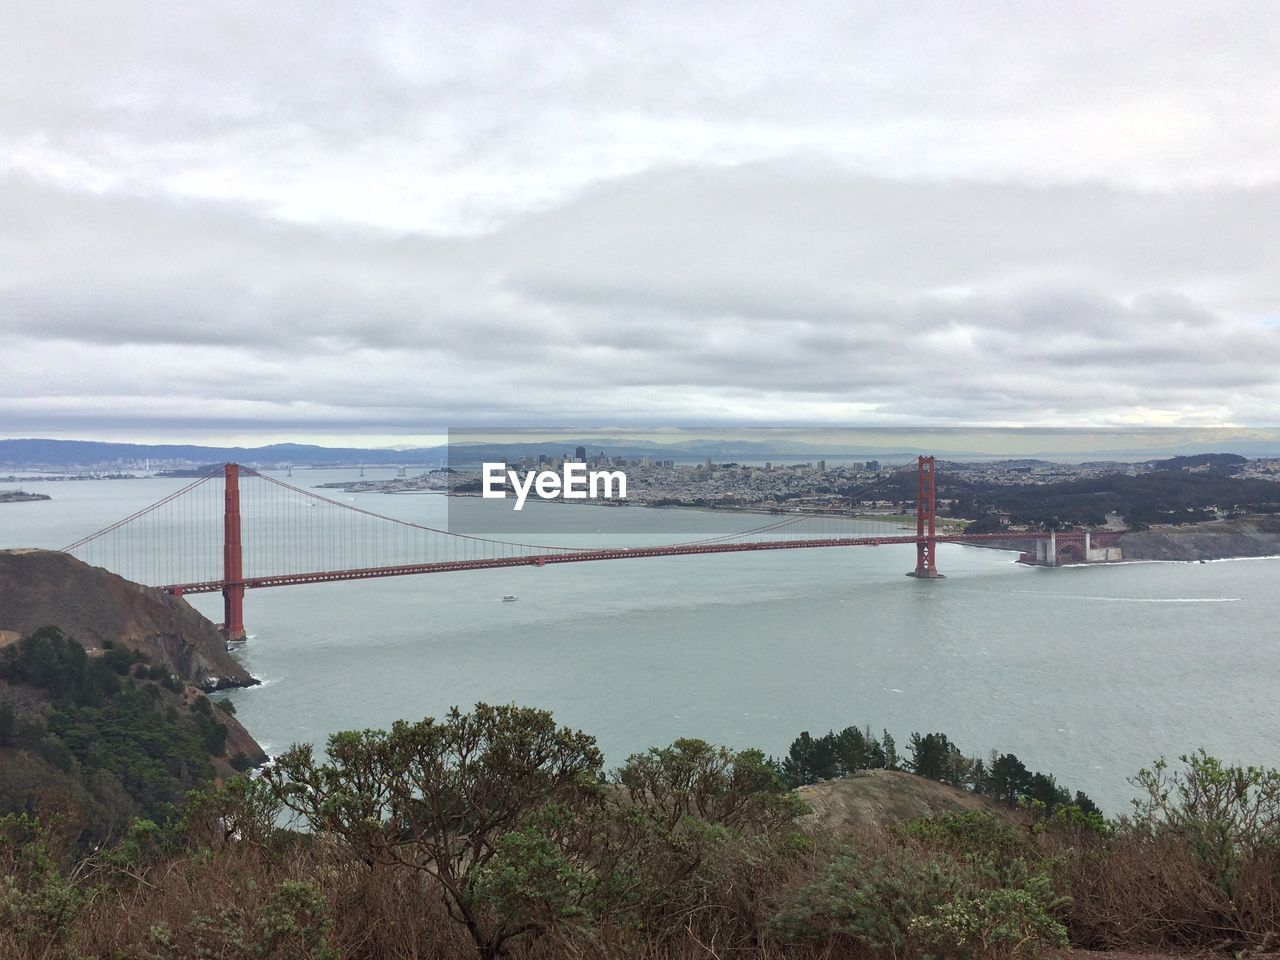 sky, connection, bridge - man made structure, suspension bridge, architecture, travel destinations, cloud - sky, mountain, water, built structure, day, nature, tourism, travel, scenics, outdoors, sea, no people, transportation, tranquil scene, tranquility, bridge, landscape, beauty in nature, city, tree, cityscape